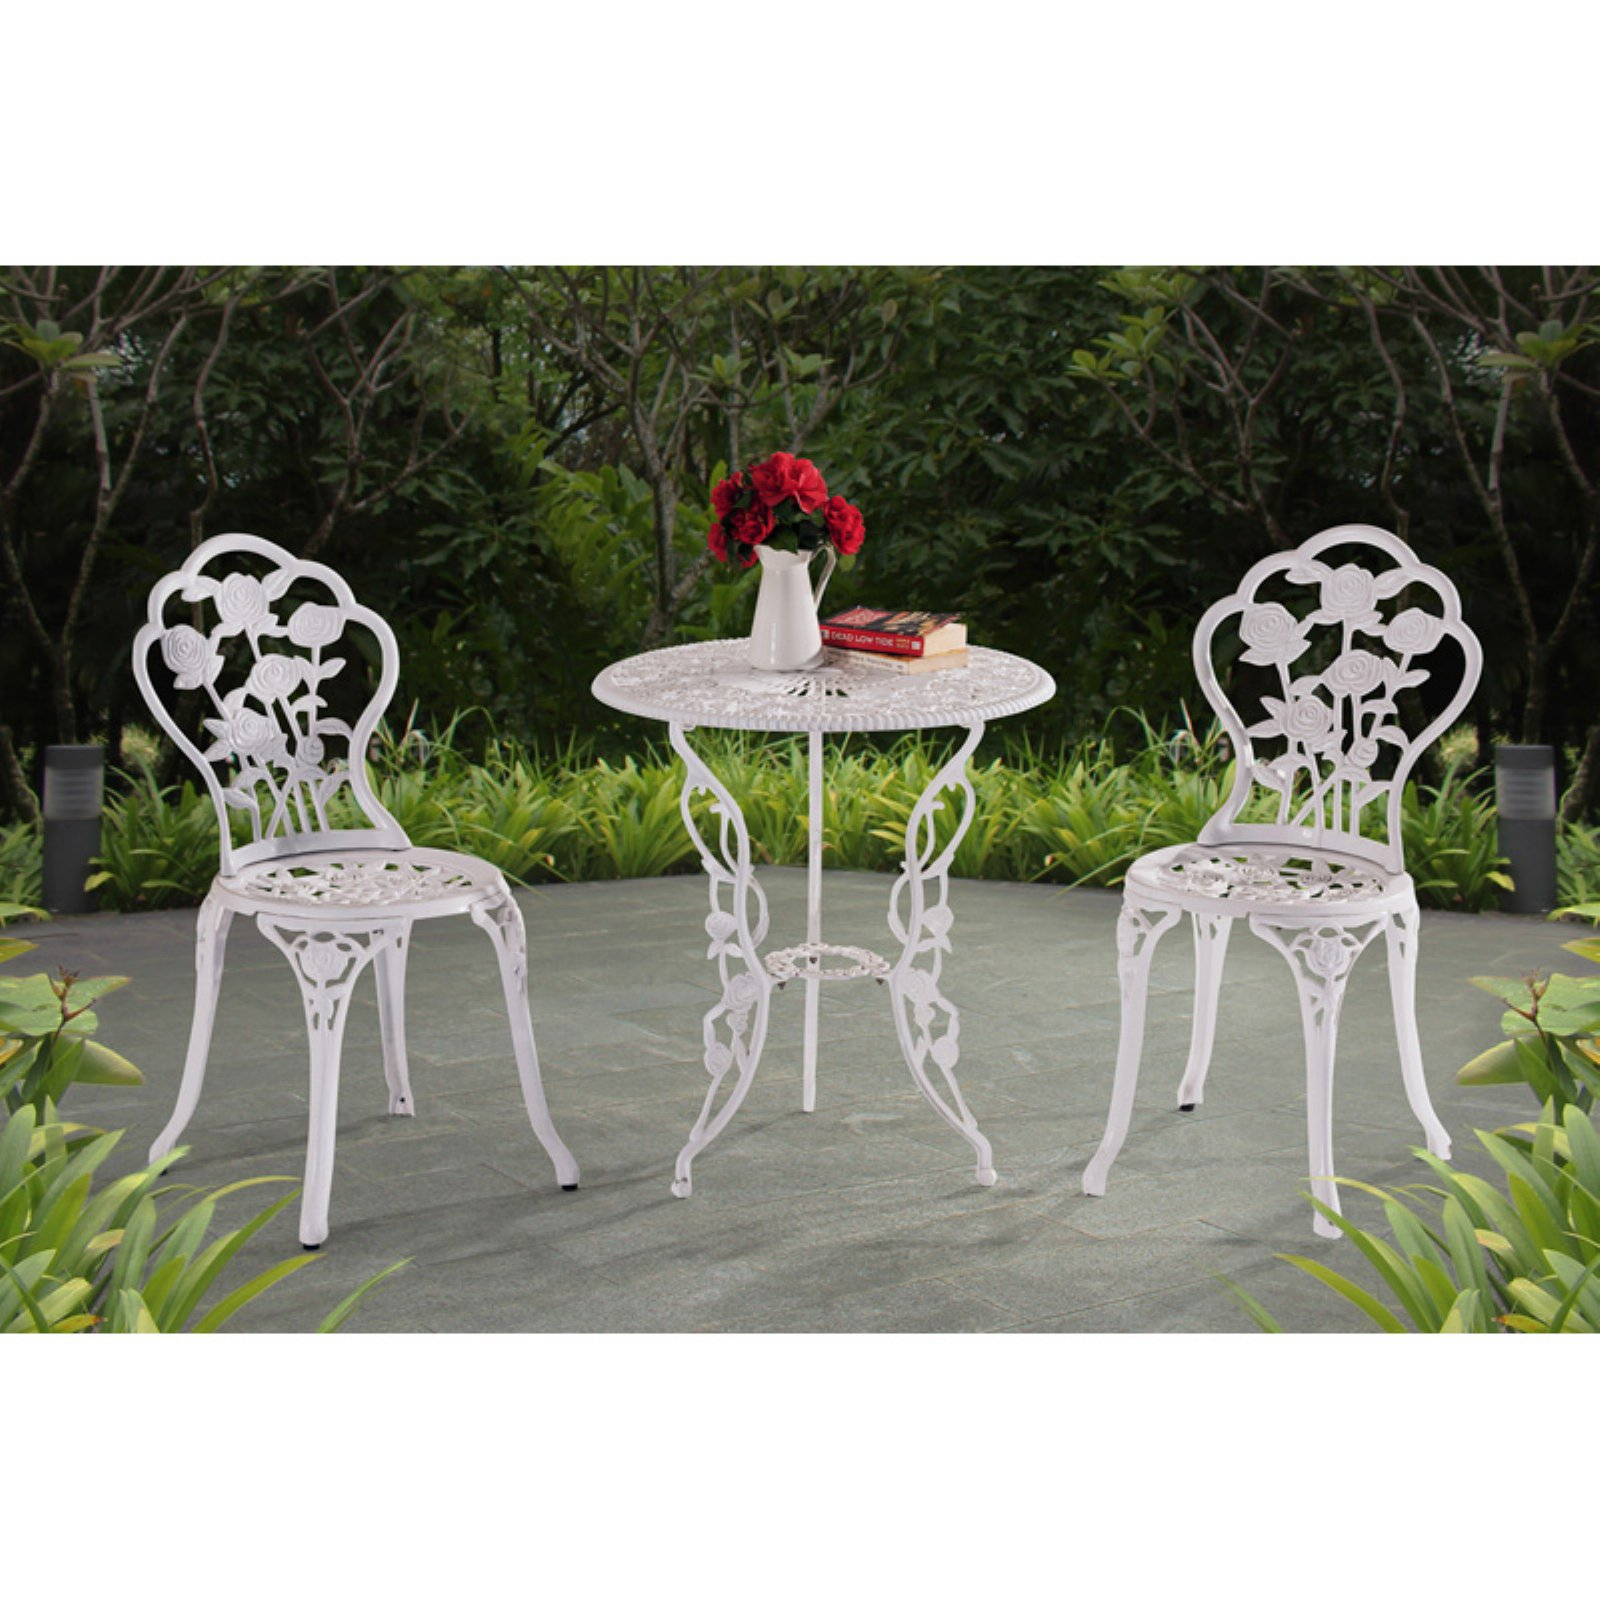 Sunjoy Releve Cast Aluminum 3-Piece Outdoor Bistro Set, White